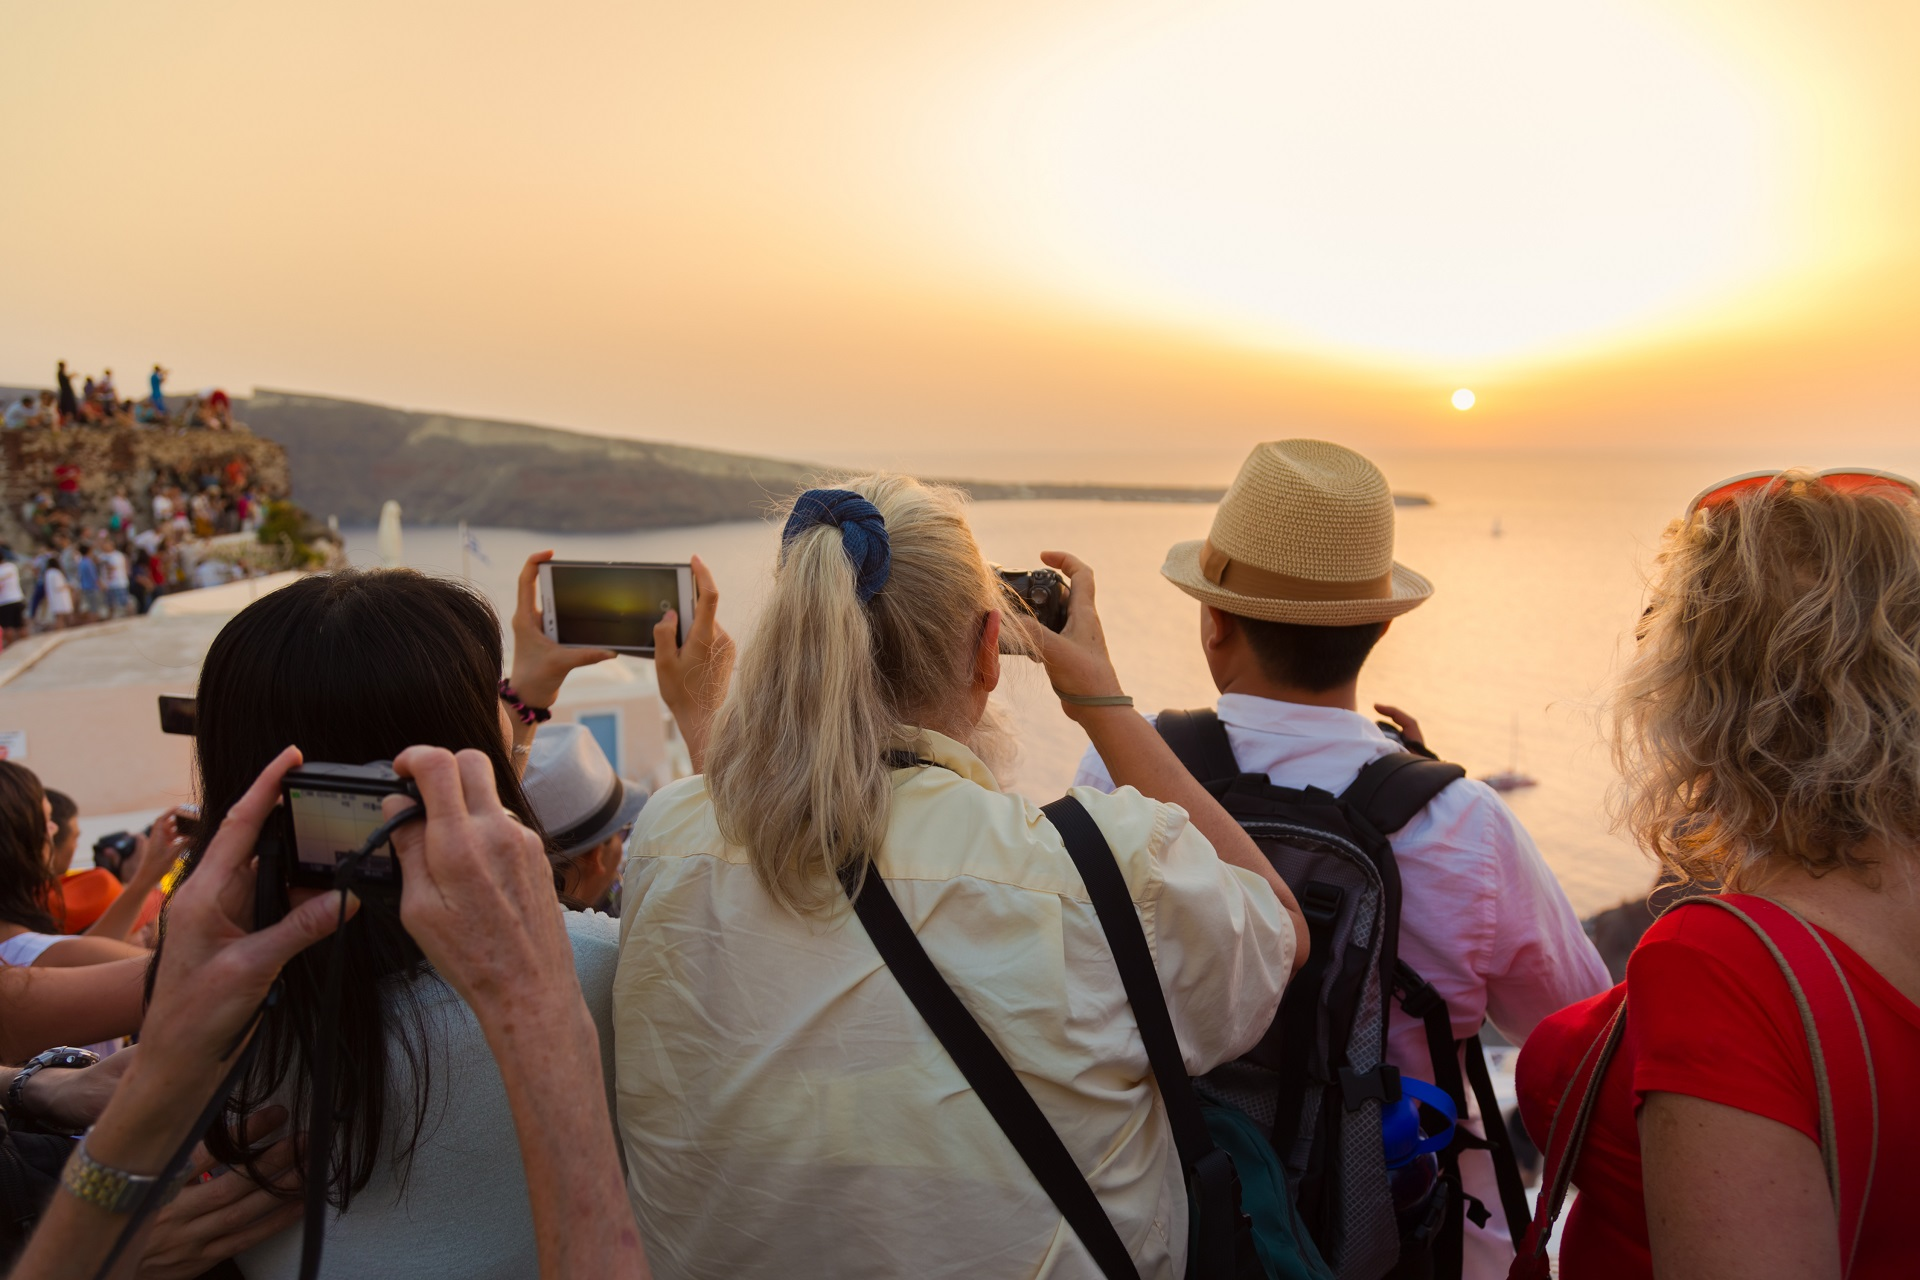 Large group of tourist watching and taking photos of famous sunset view in Oia village on Santorini island in Greece